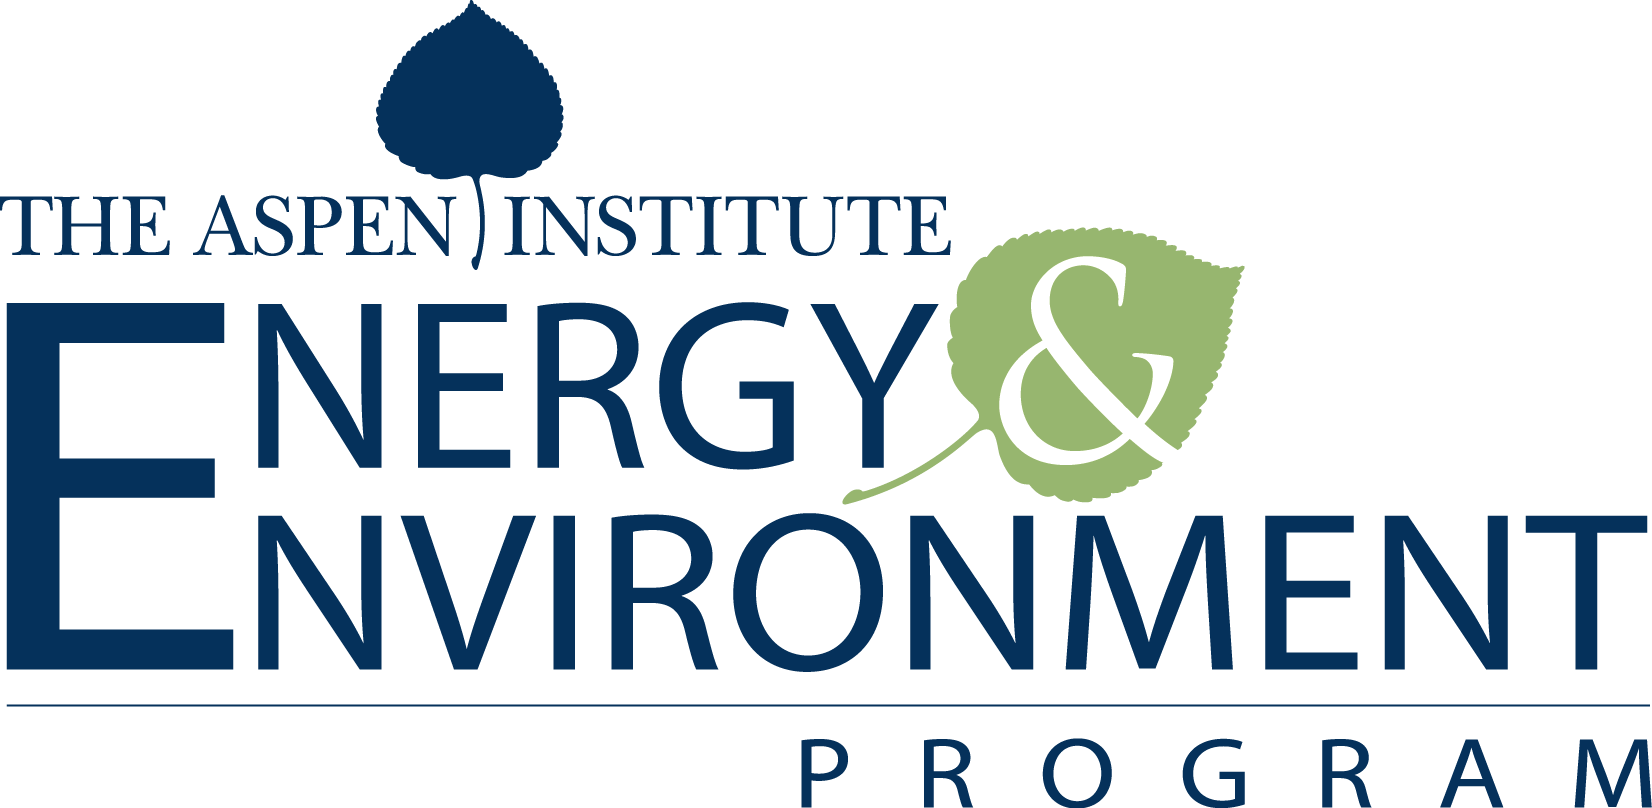 Public Panel Discussion: India - US Perspectives on Energy and Climate Change